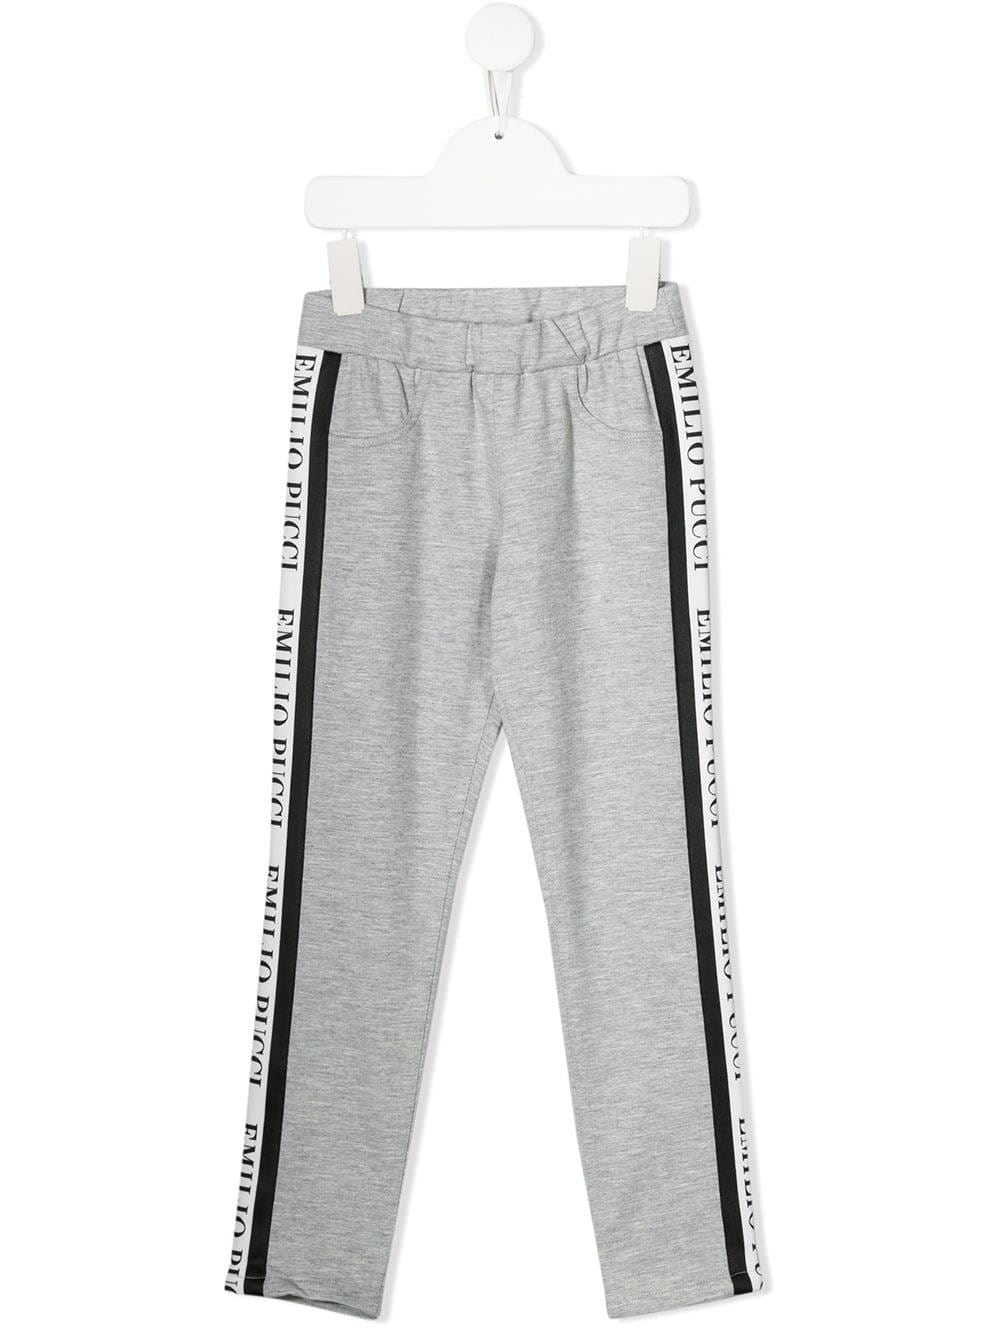 EMILIO PUCCI JUNIOR logo stripe track pants - Maison De Fashion